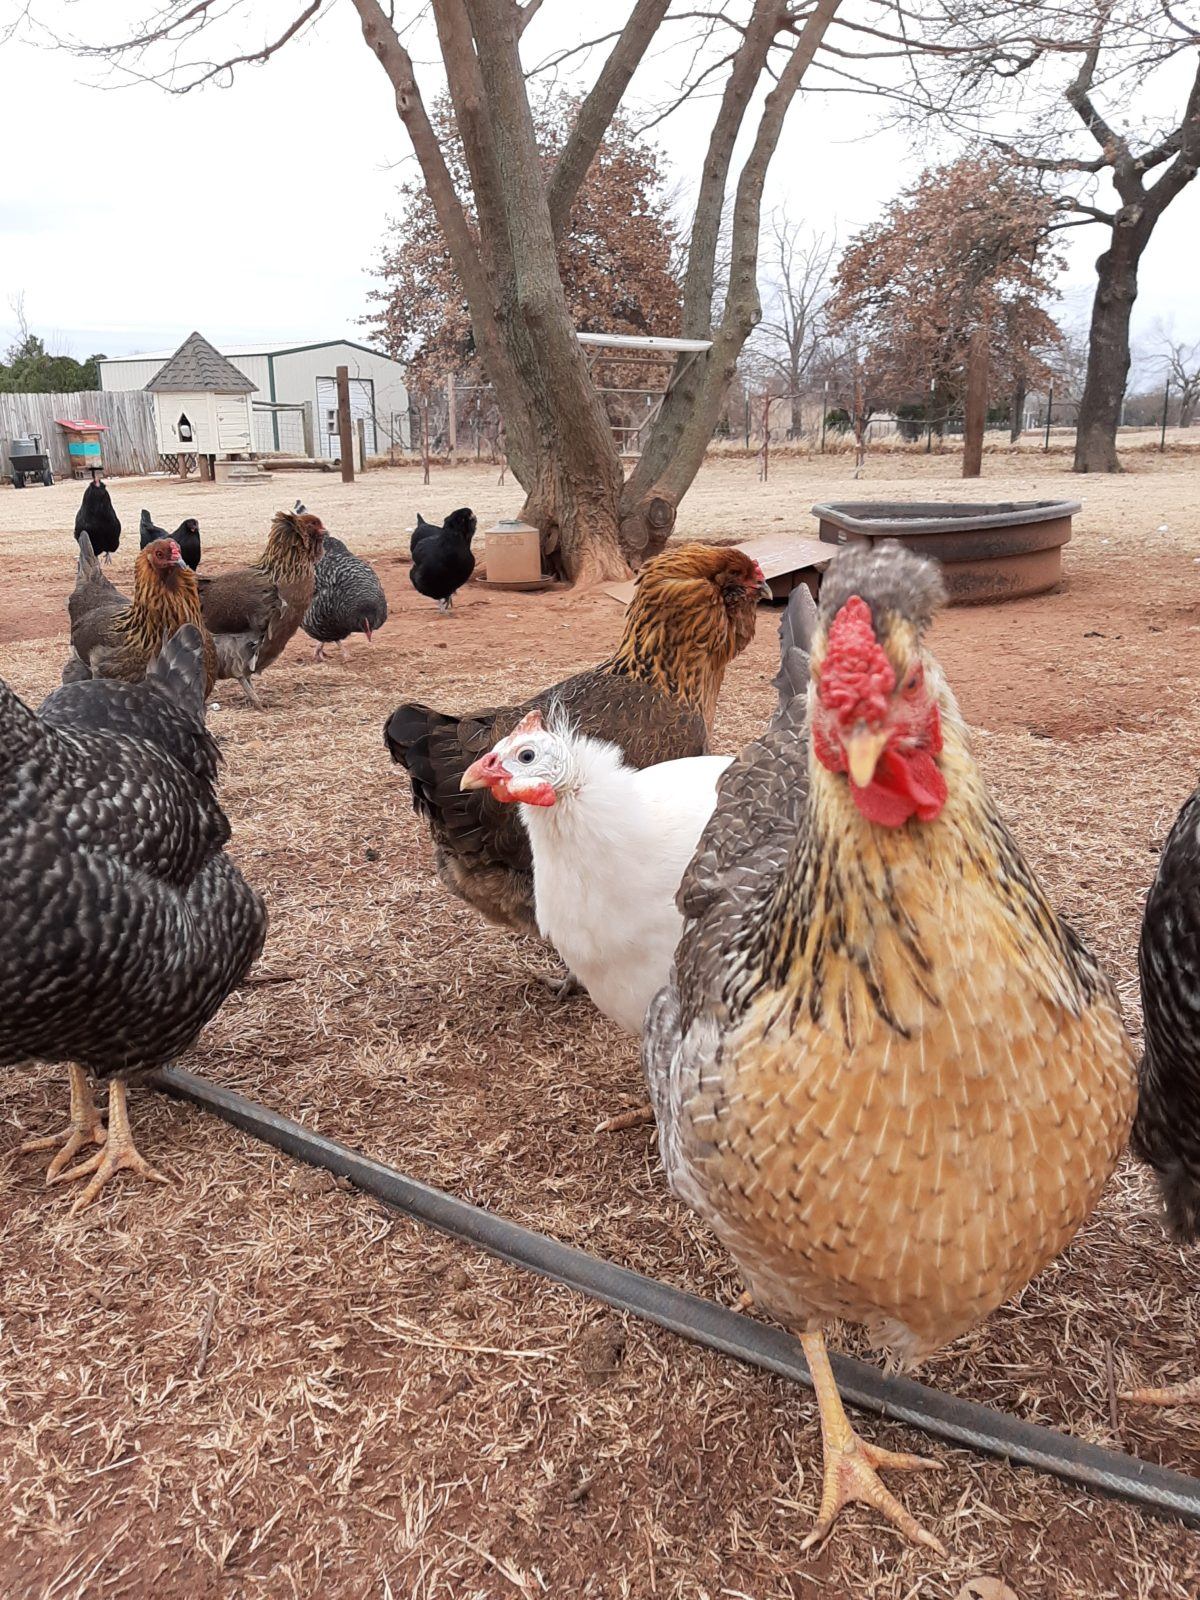 more chickens in yard